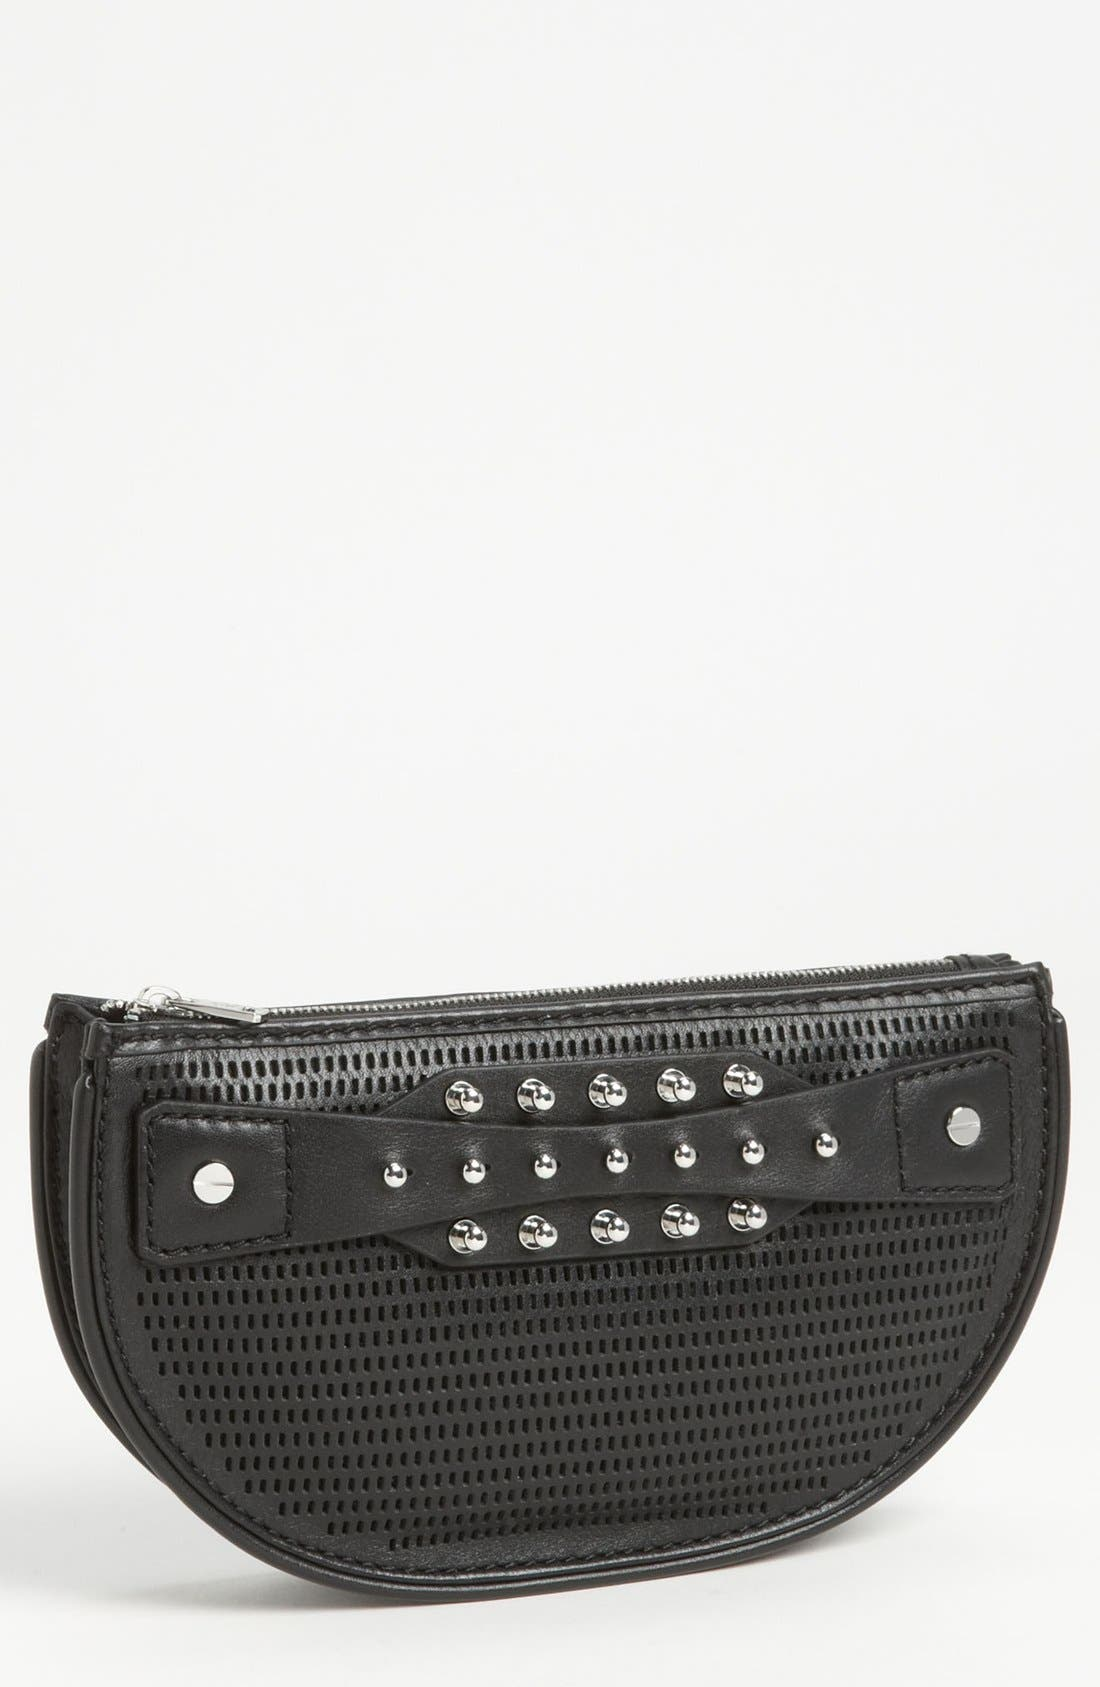 Alternate Image 1 Selected - McQ by Alexander McQueen 'Collar Stud - Mini' Perforated Leather Clutch